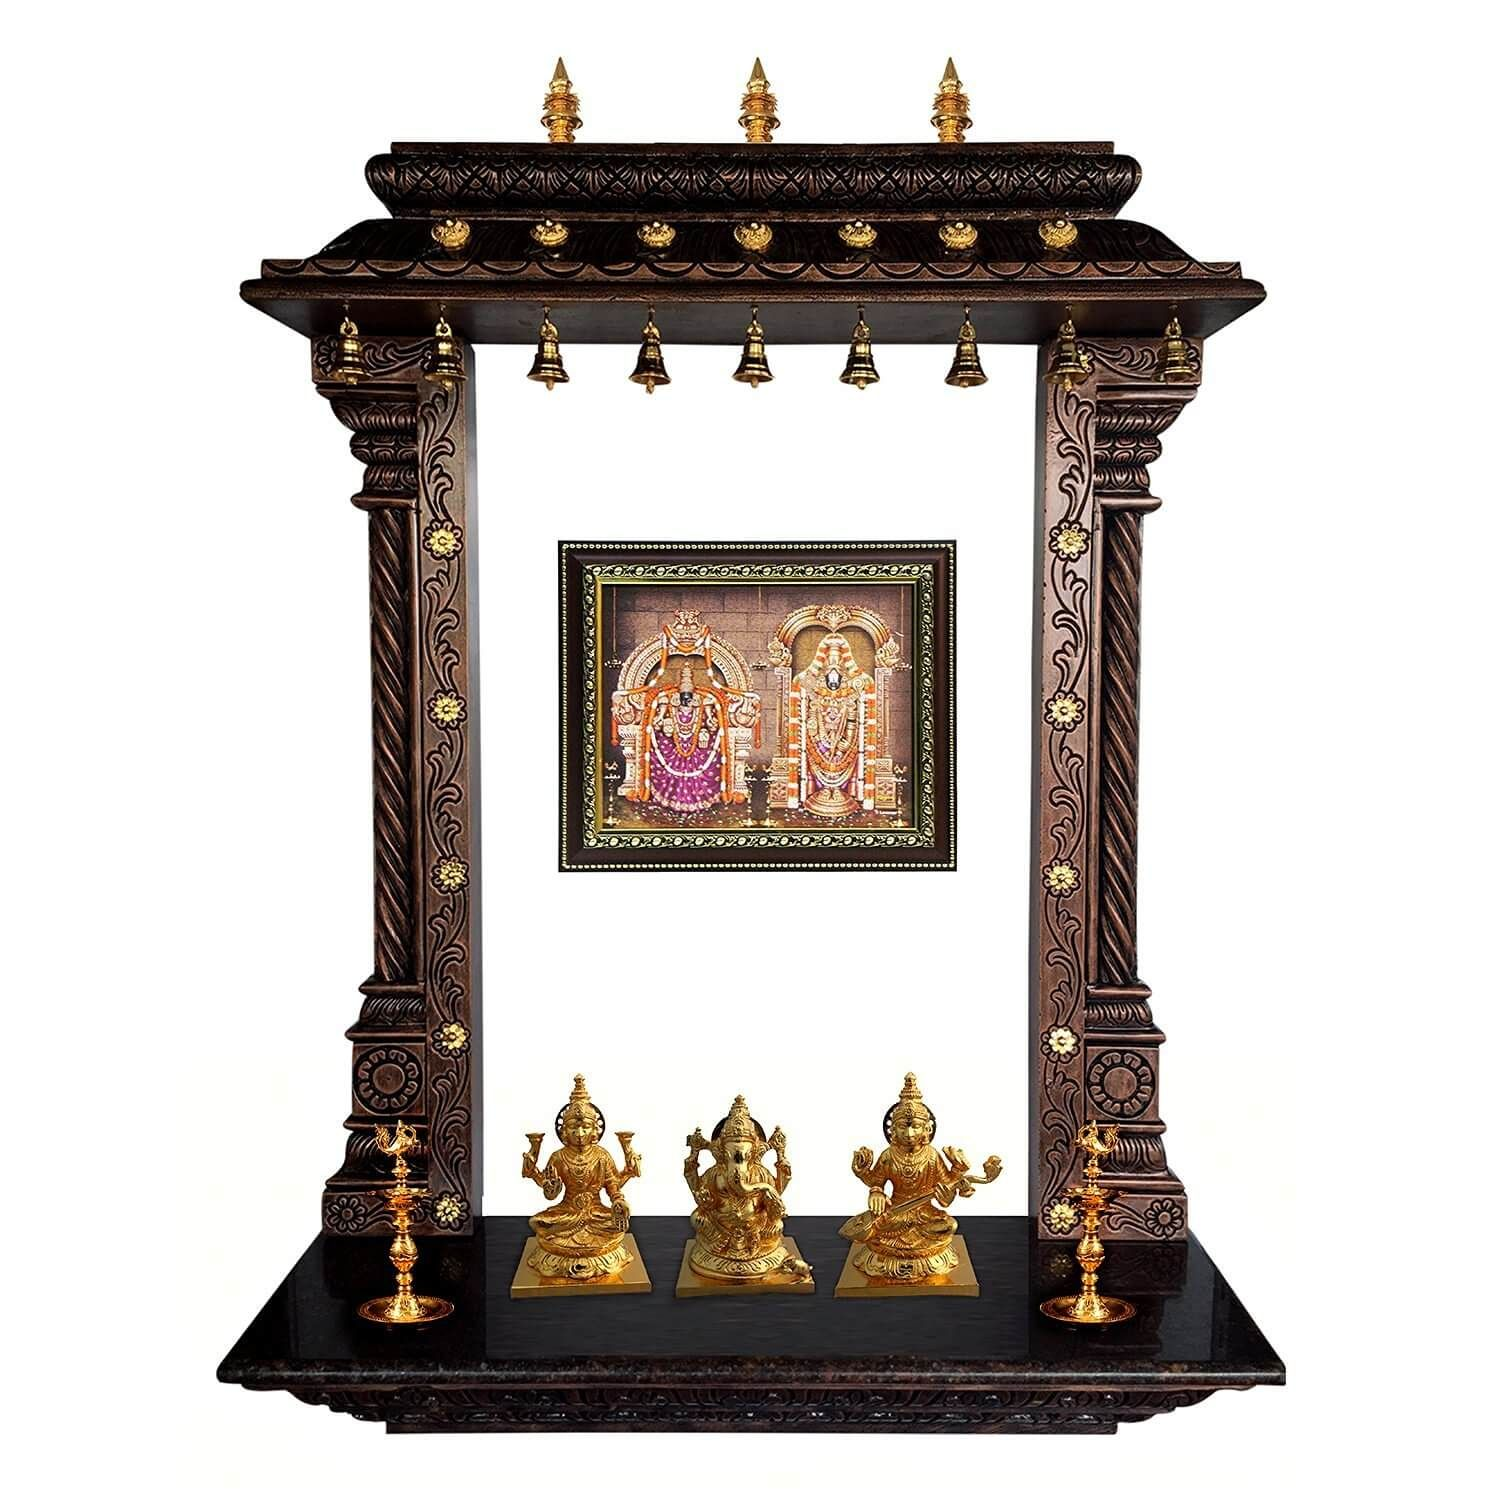 Fancy Wooden Pooja Mandir Designs For Home Mold - Home Decorating ...